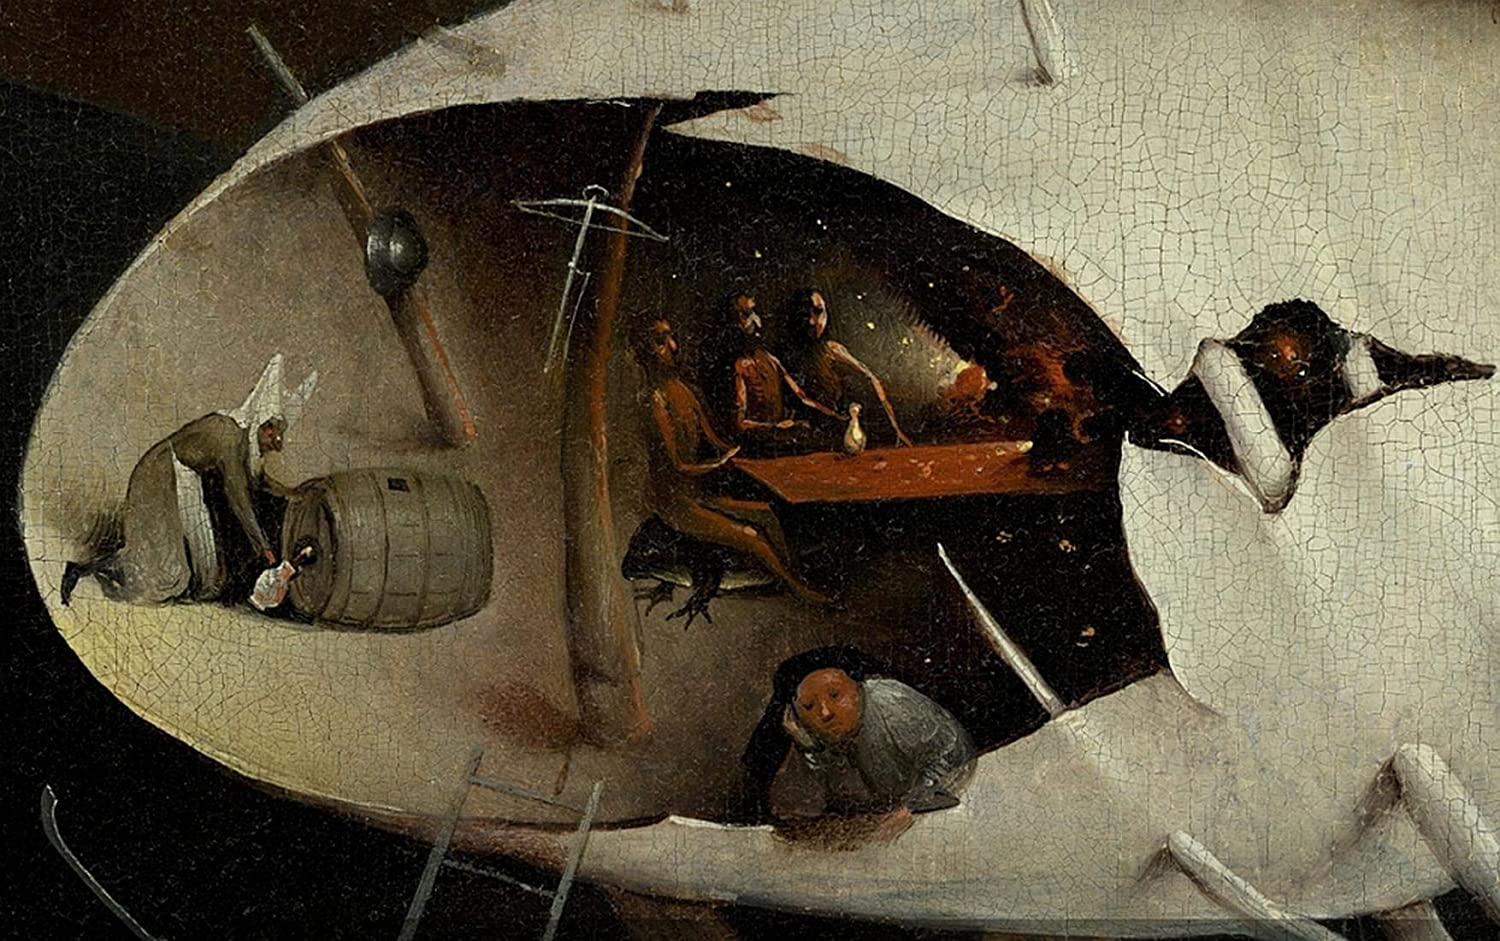 Bosch Hieronymus The Garden of Earthly Delights Right Panel Detail Inside The Tree Man Puzzles Jigsaw 1000 Piece